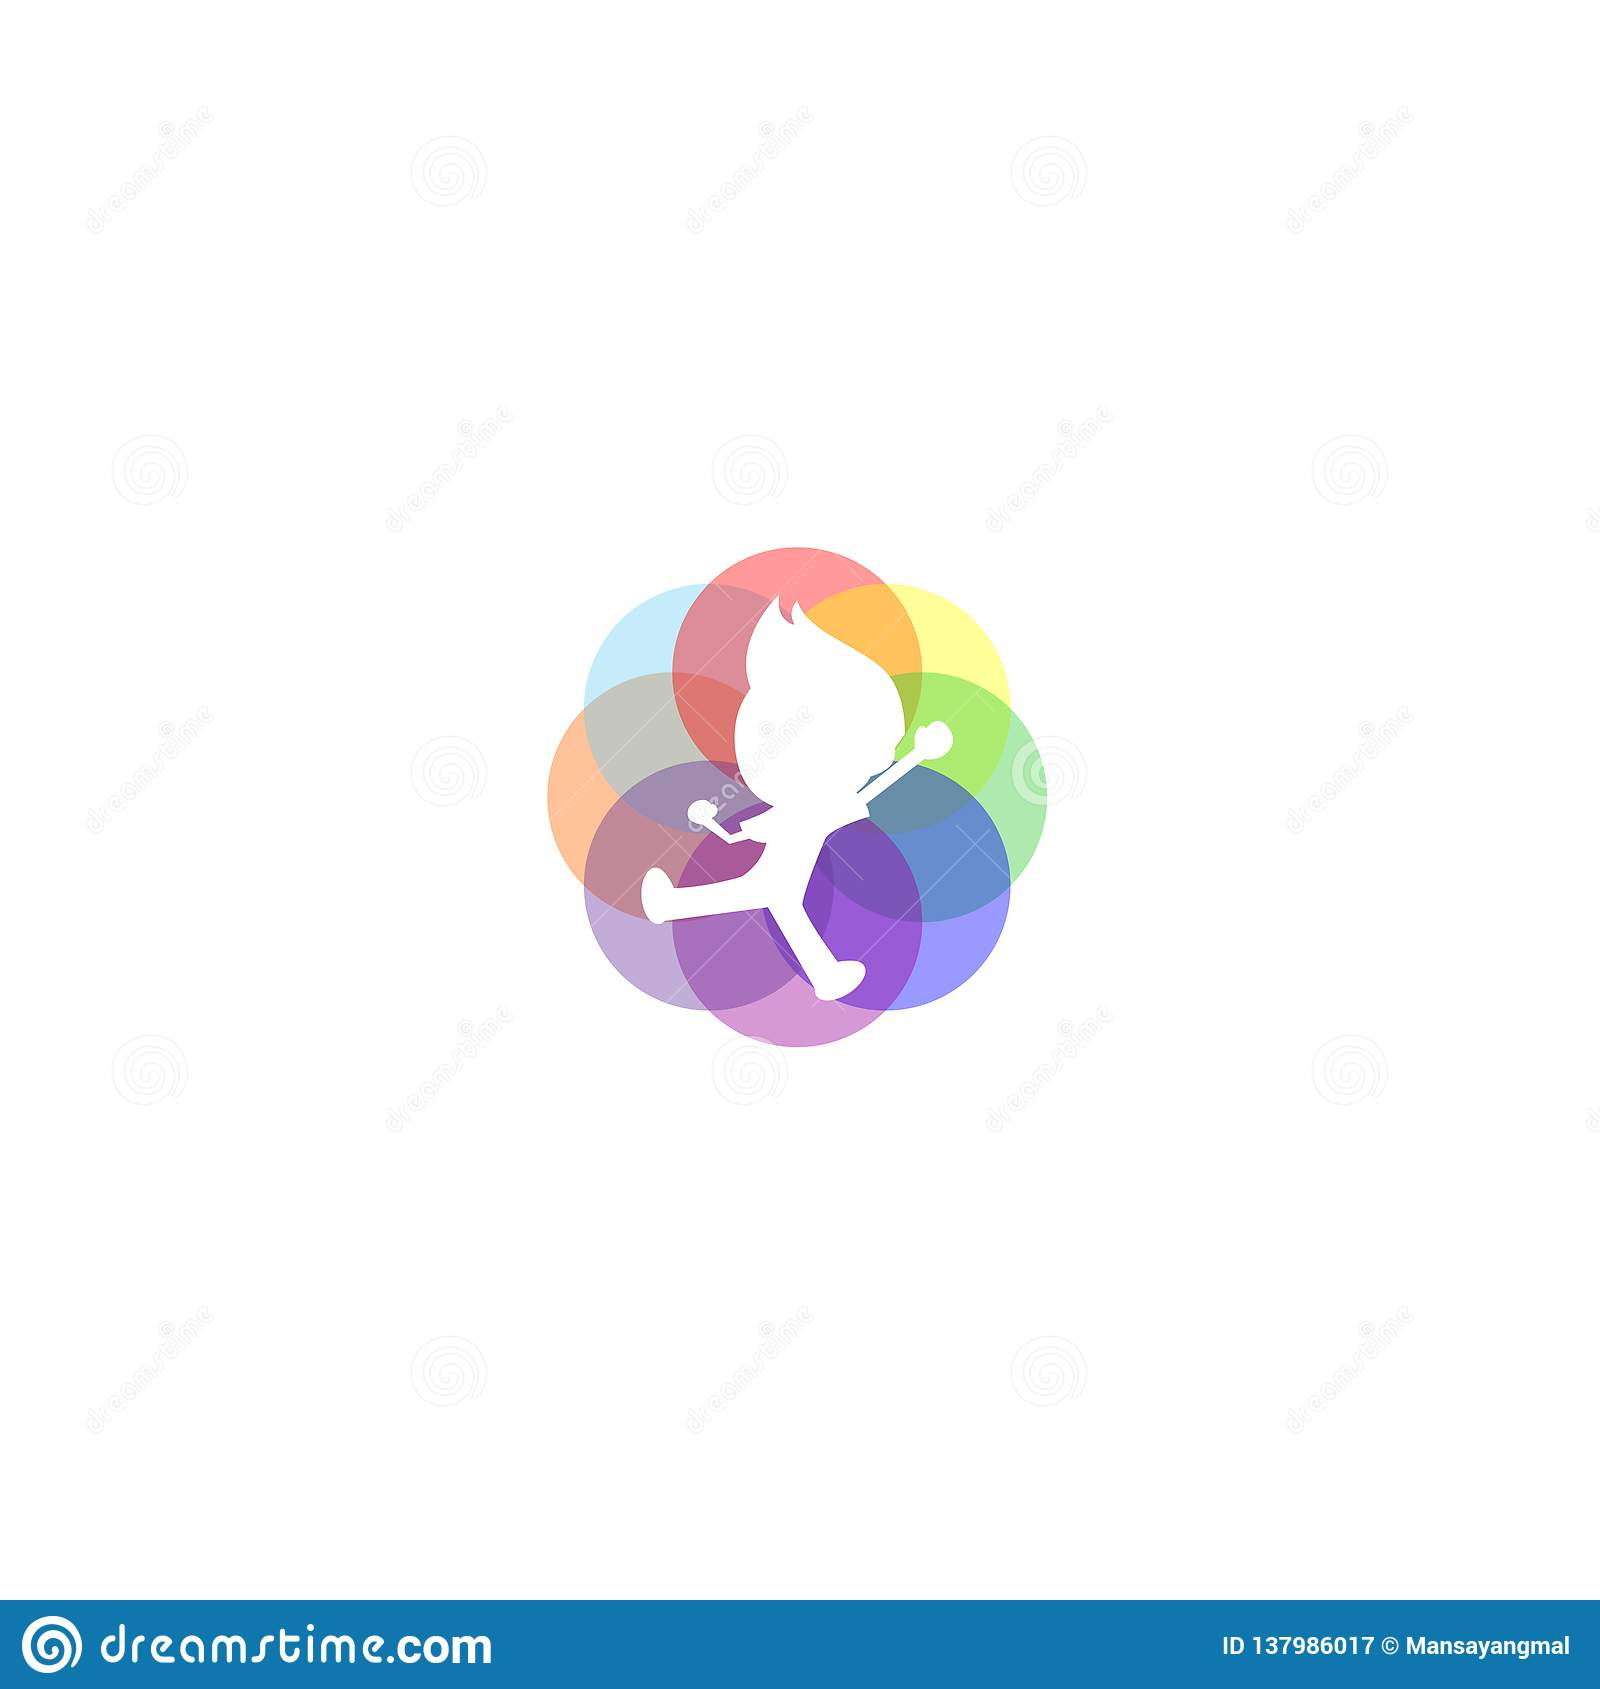 colorful kids jump logo inspiration stock illustrationcolorful kids jump logo inspiration